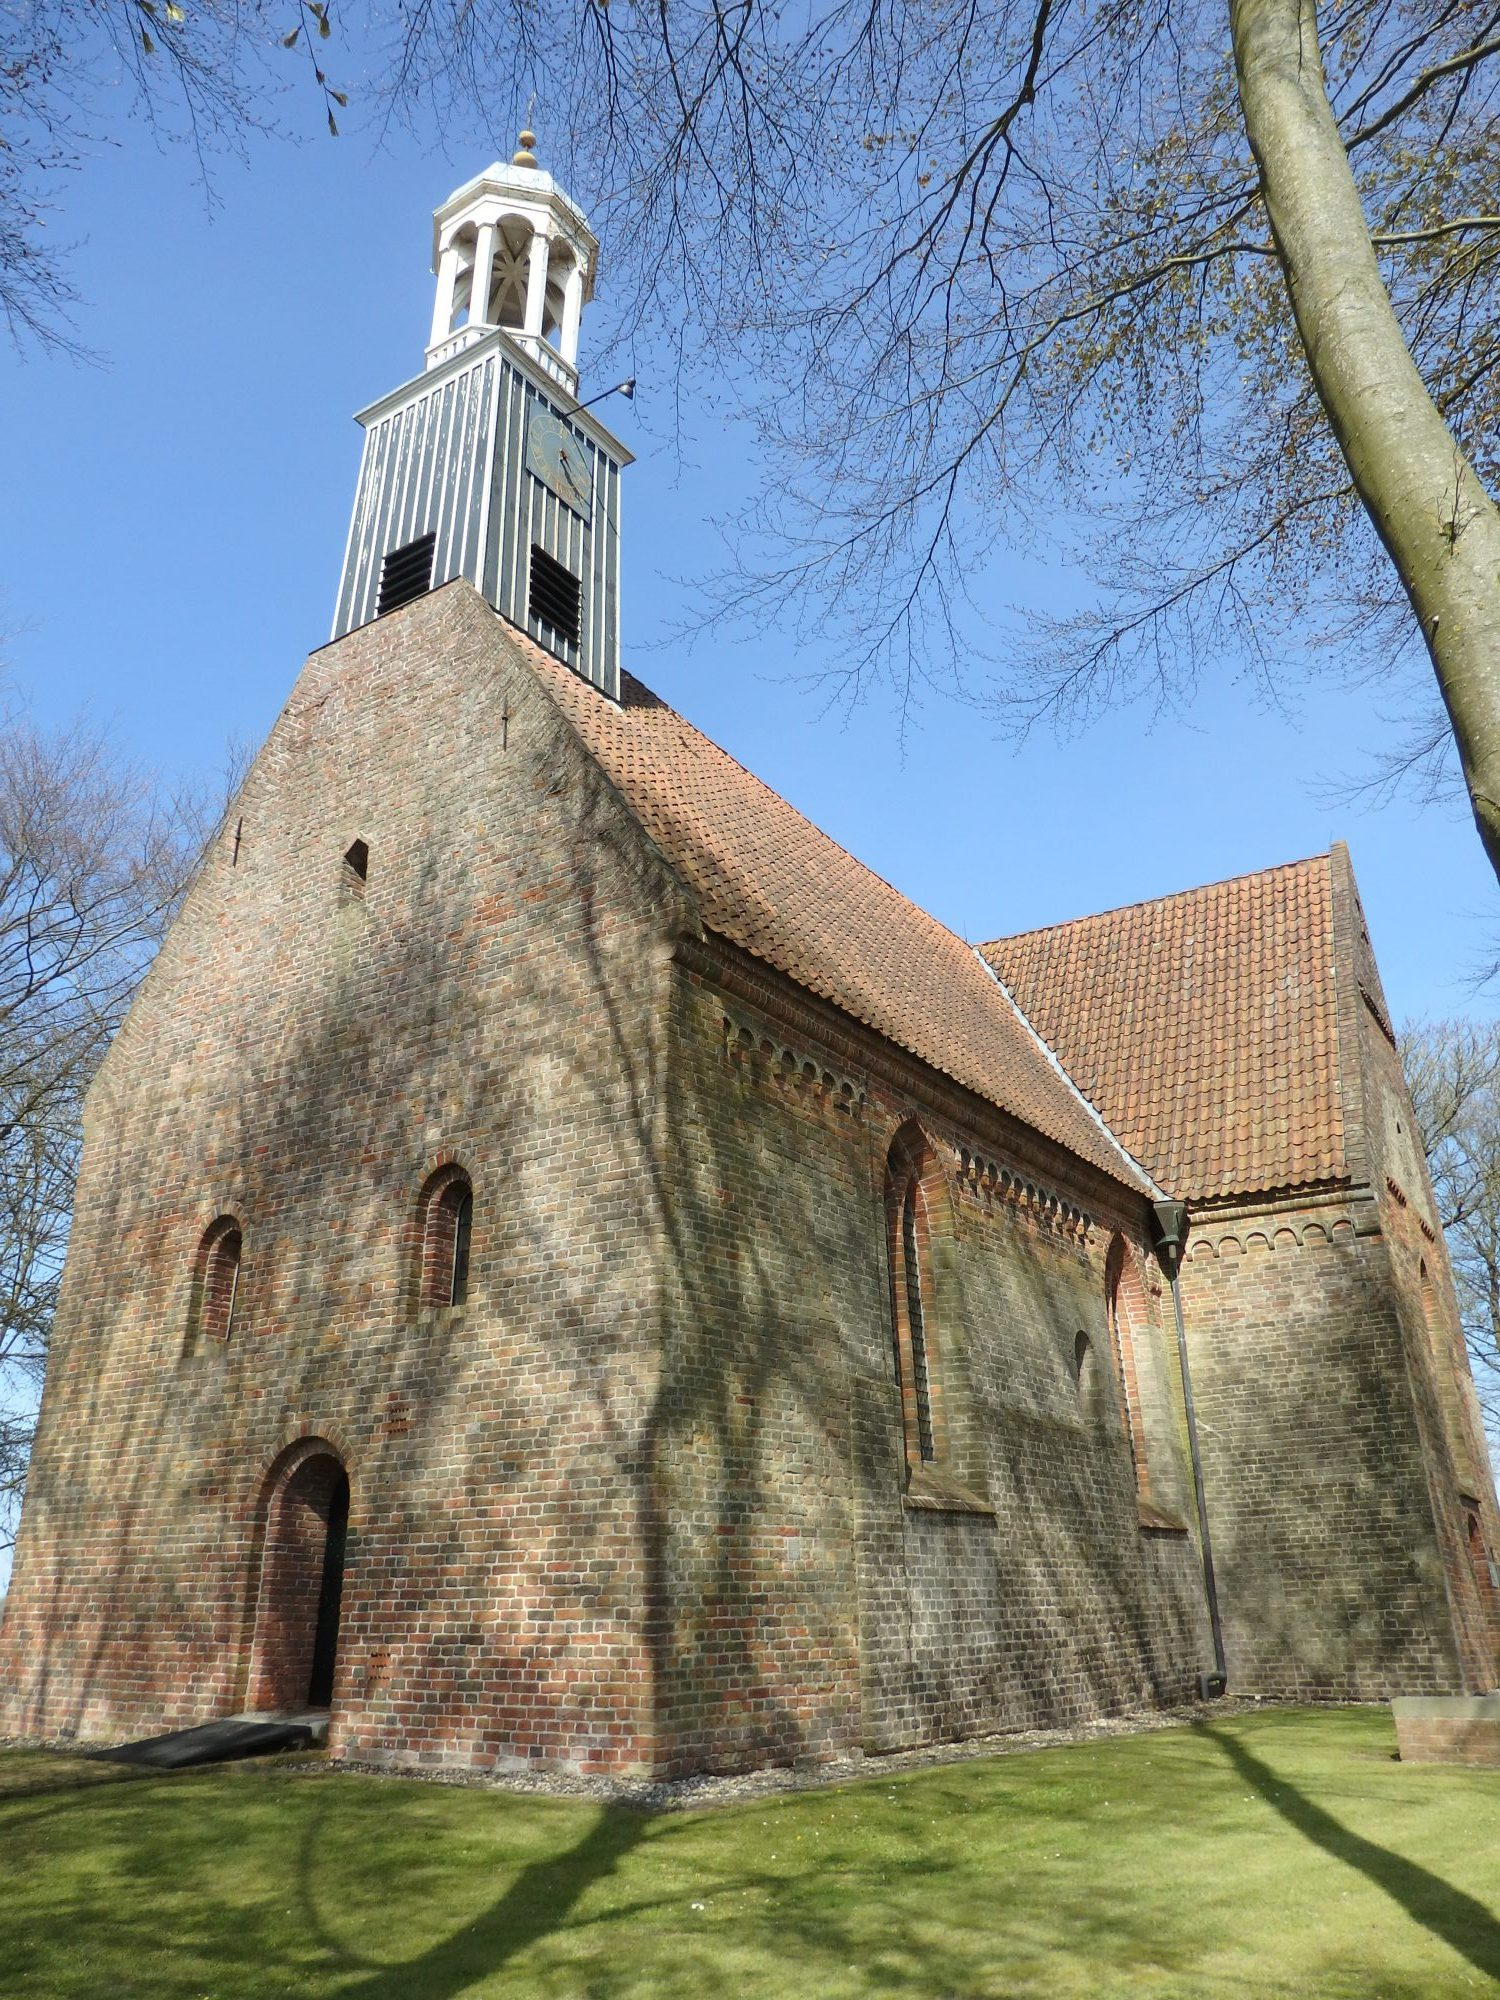 Leermens church in Groningen province